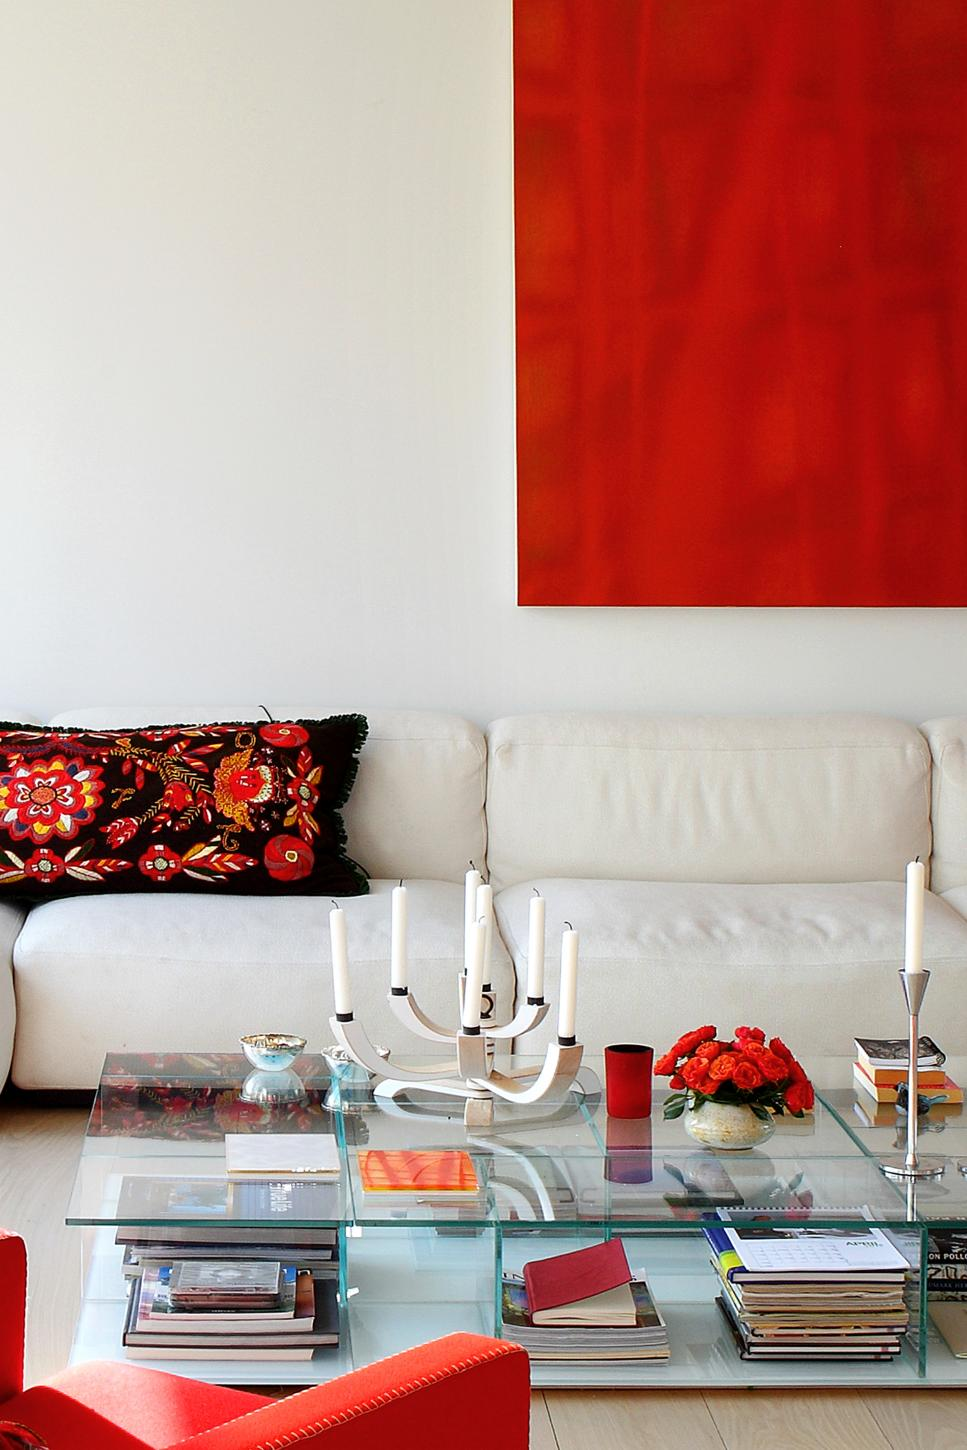 Decorate A Room: Crimson Red Color Palette - Crimson Red Color Schemes